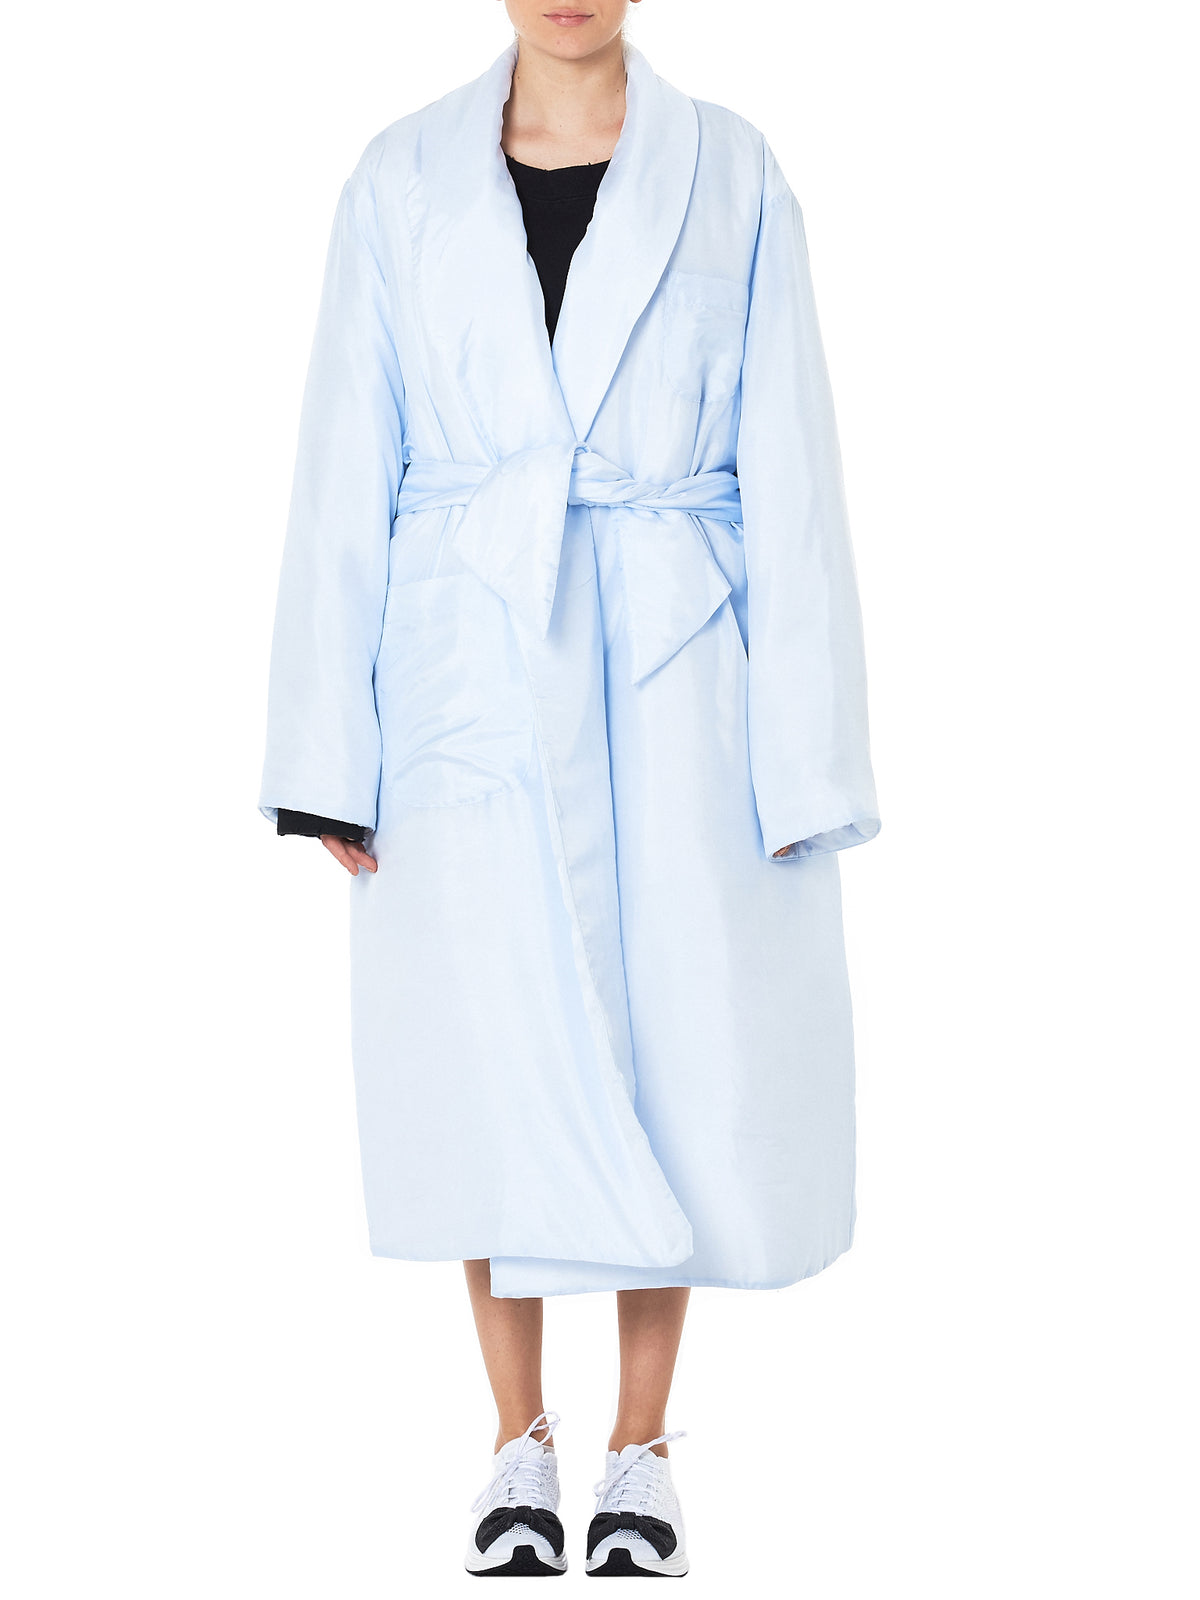 'CHARLIE' Silk Coat (CHARLIE-T101-BABY-BLUE)